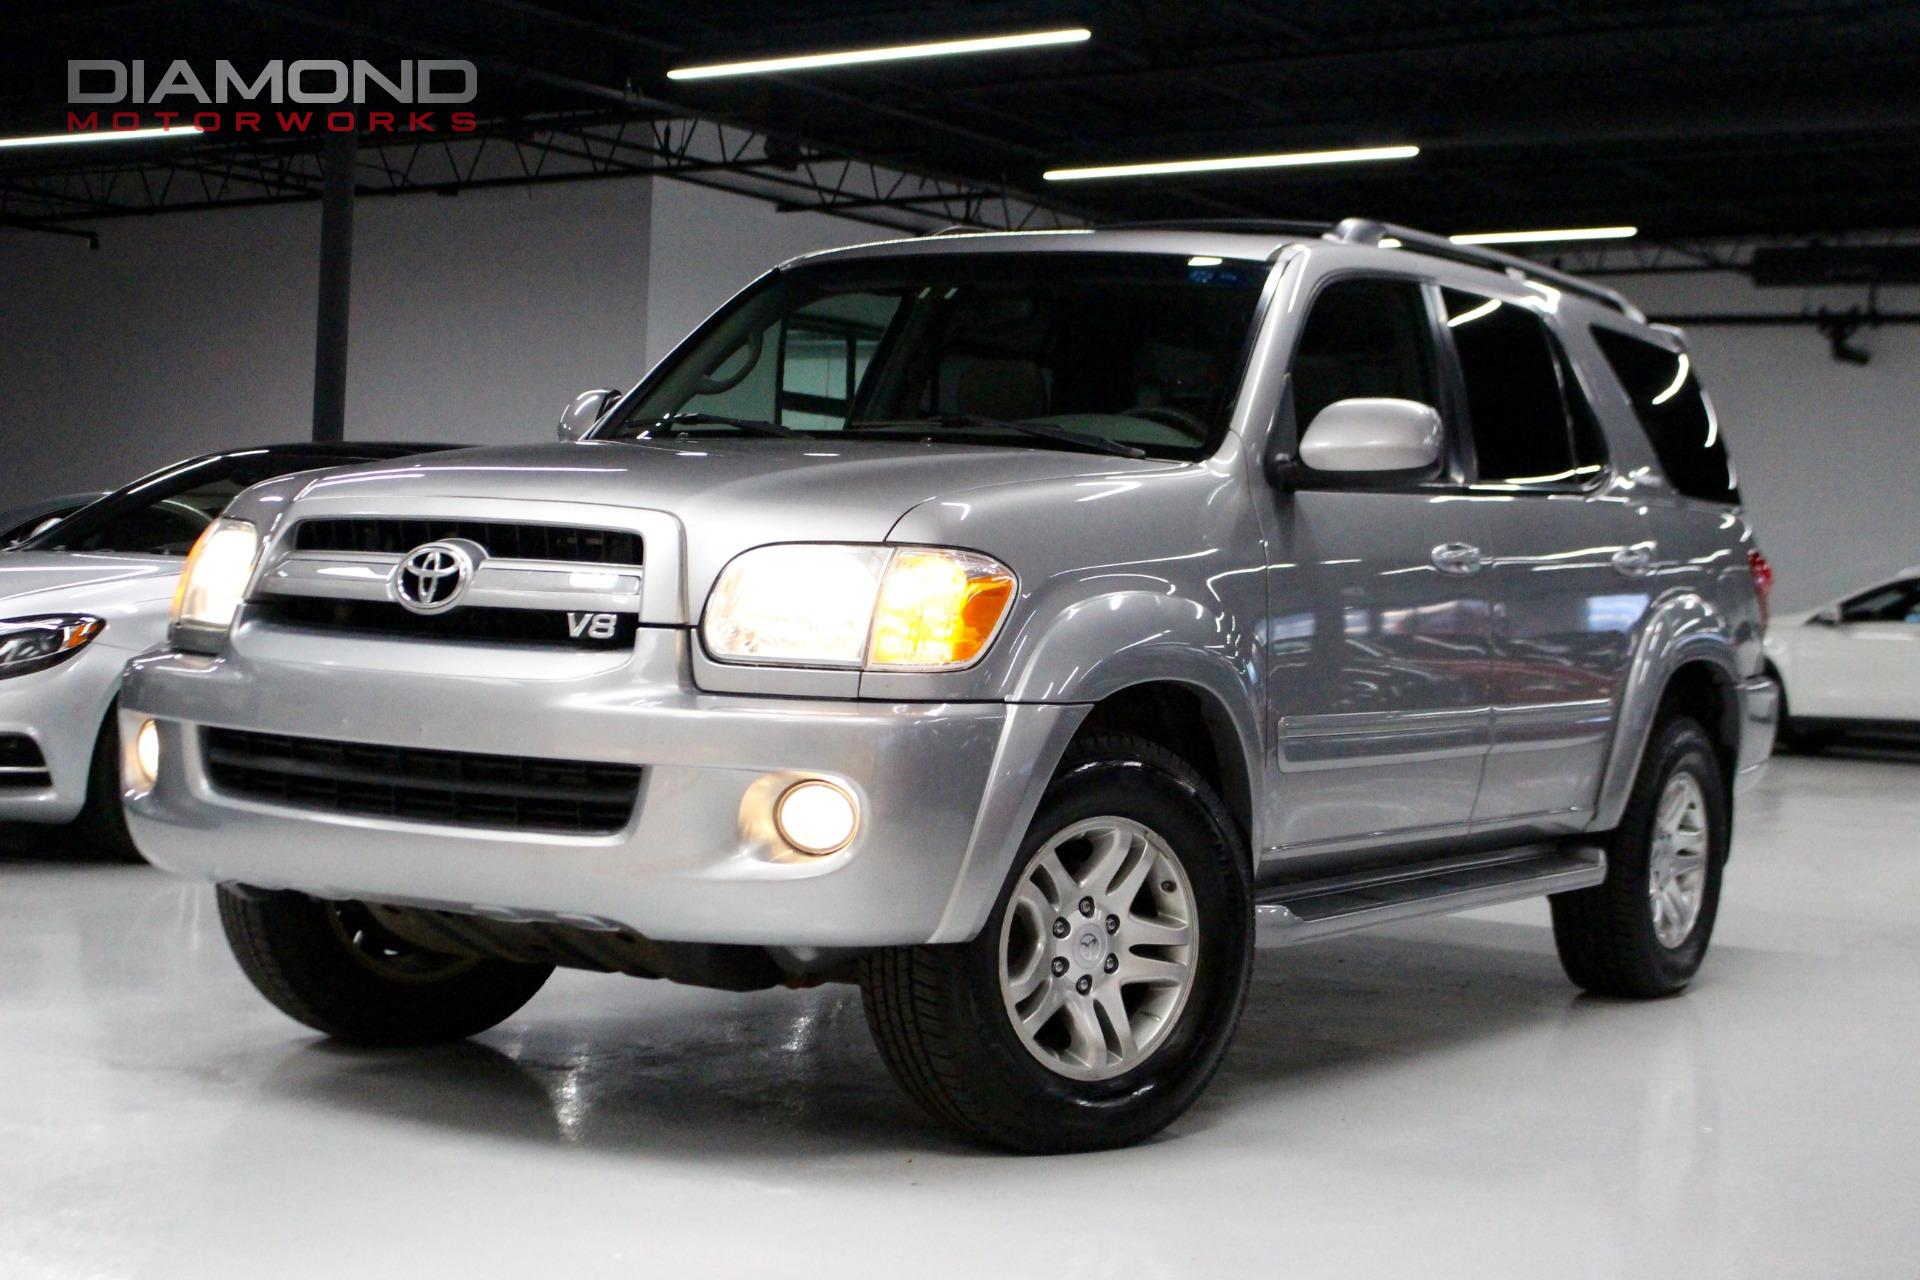 Toyota Certified Pre-Owned >> 2005 Toyota Sequoia Limited Stock # 242965 for sale near ...